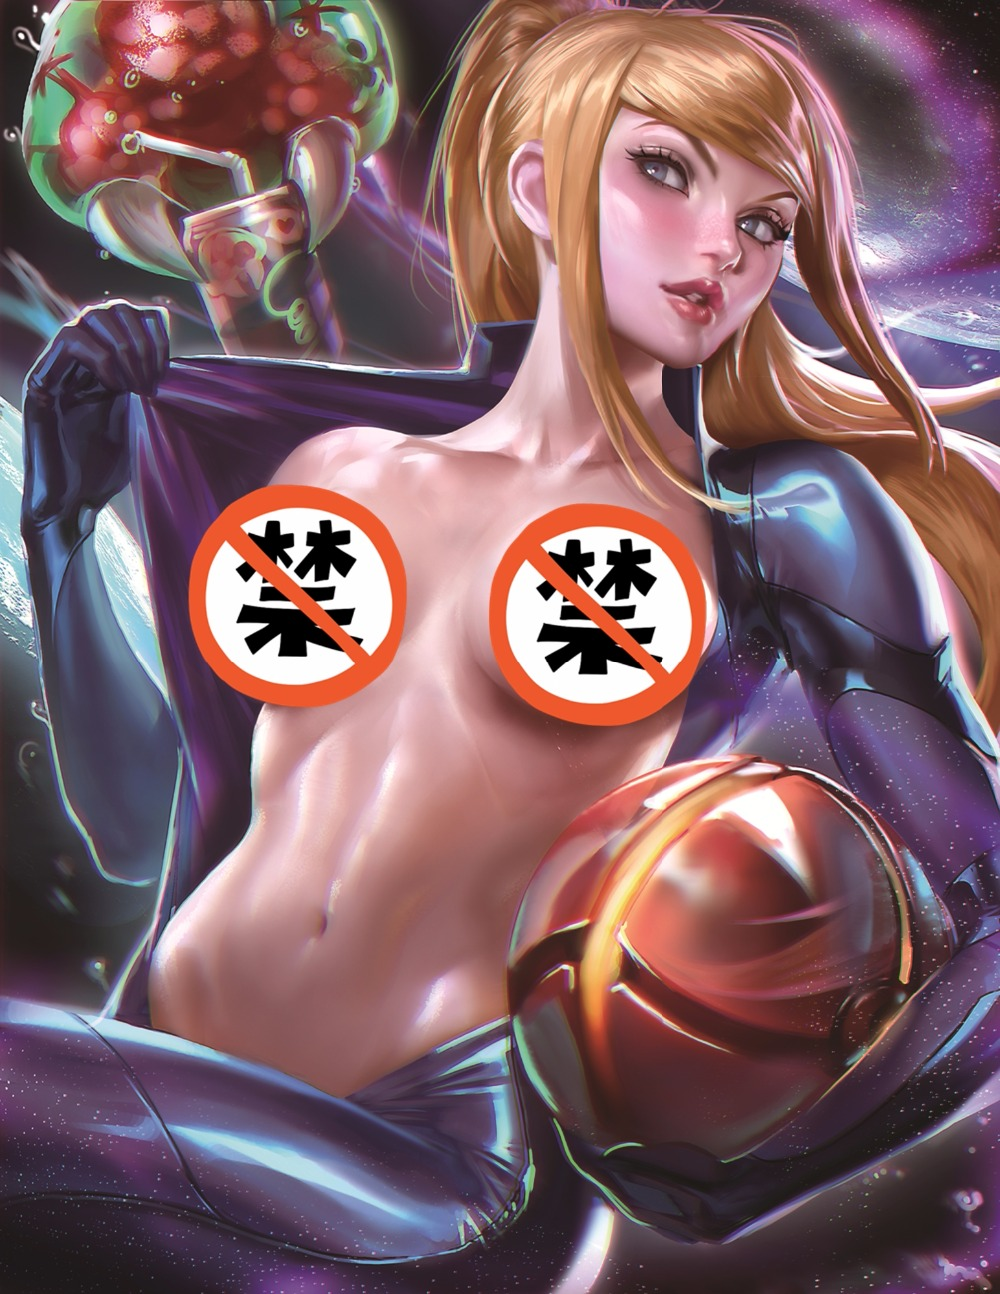 Print art silk or canvas poster METROID cute beauty samus sexy modern living room room print 13x20 24x36 inch movie wall picture image